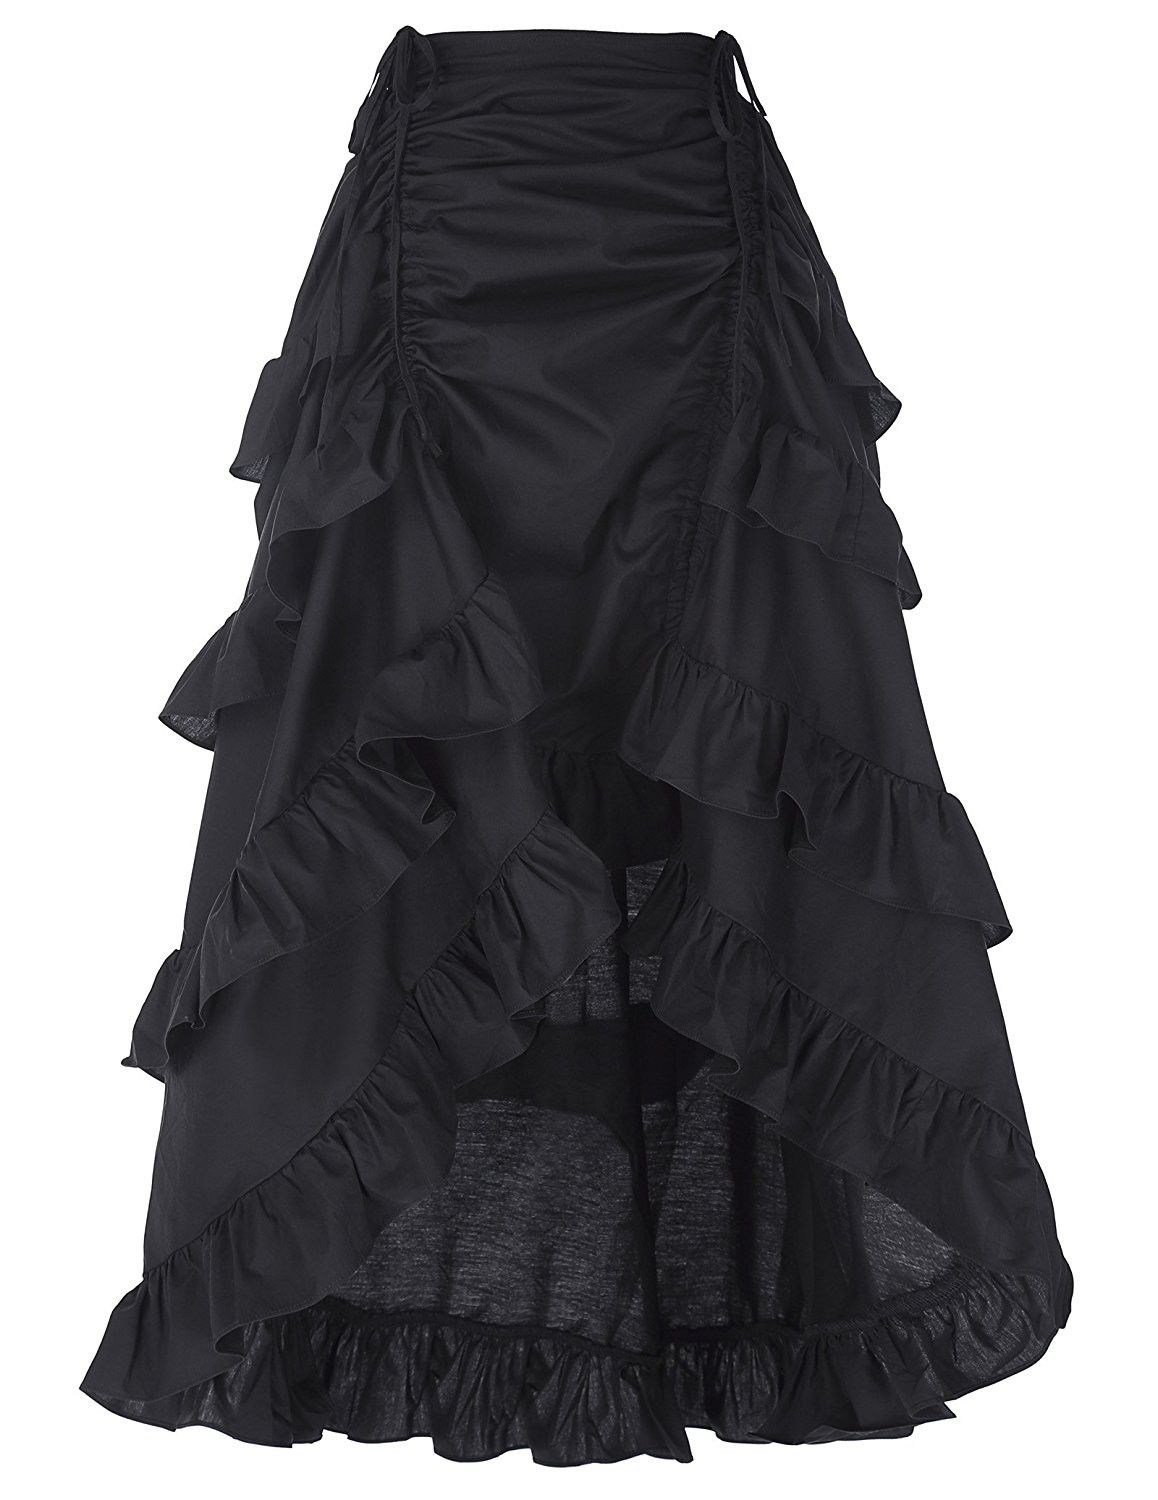 cb74b8d9c16f Belle Poque Women's Costume Steampunk Cocktail Party Skirts Black ...